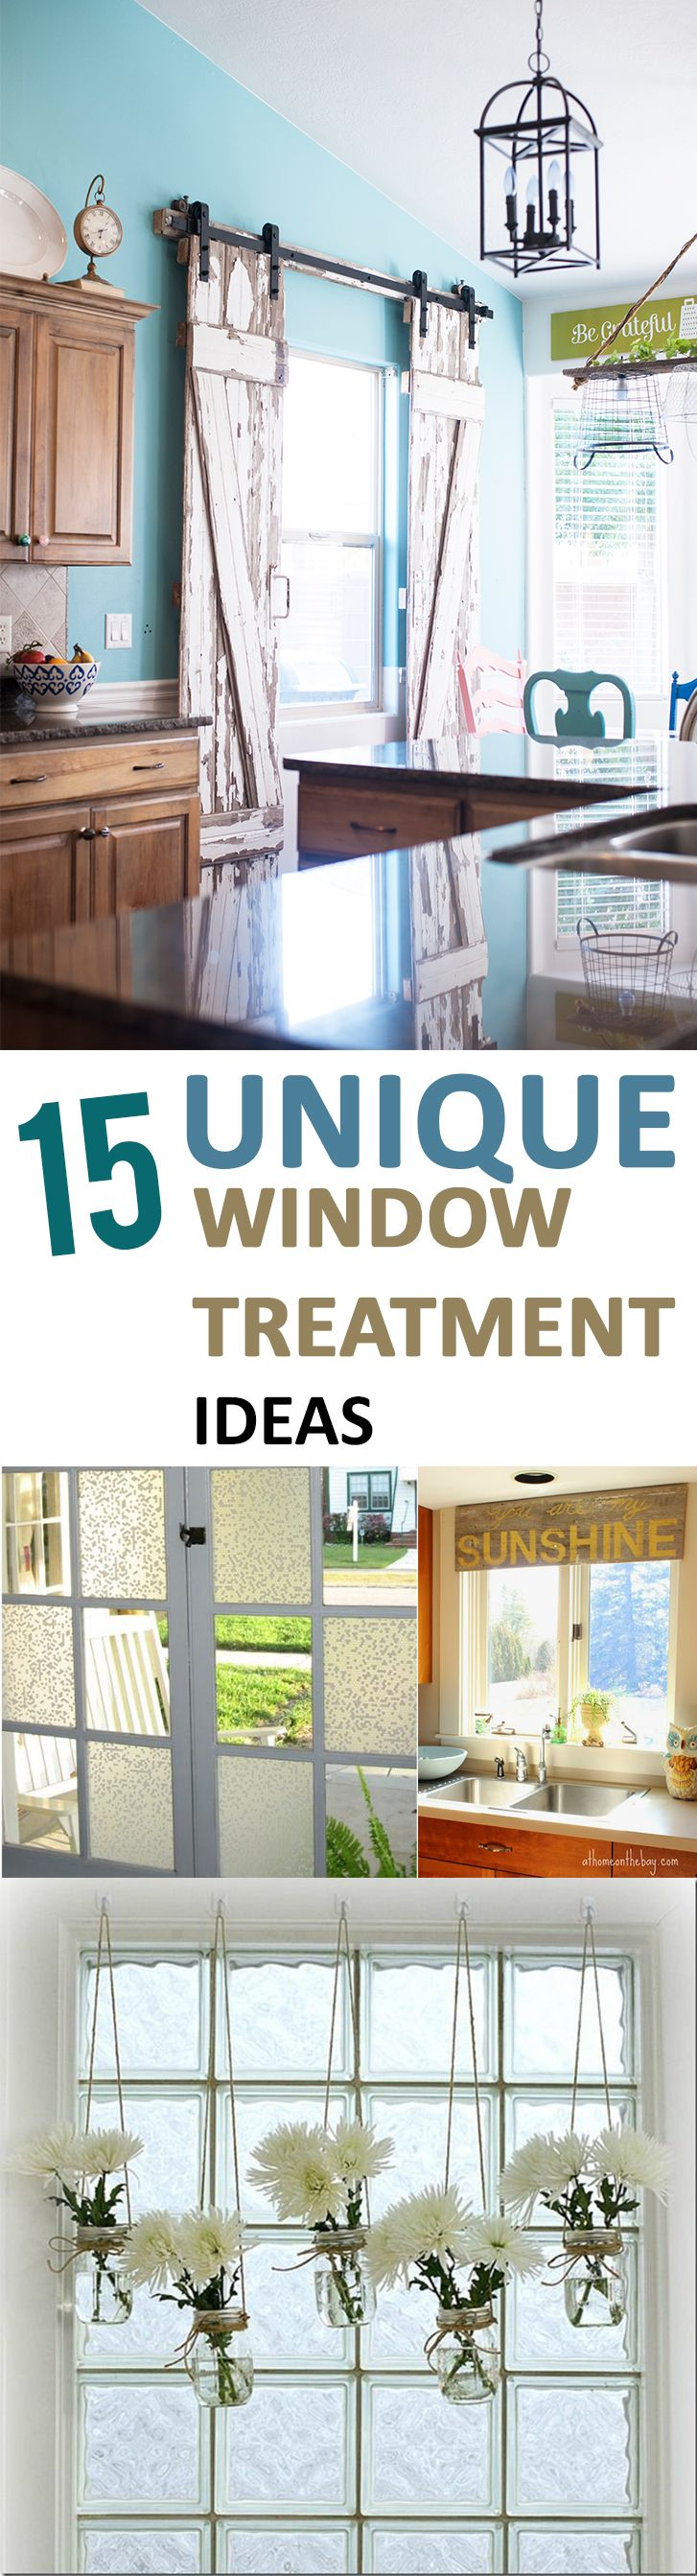 Diy bathroom curtain ideas - 17 Best Ideas About Bathroom Window Treatments On Pinterest Bathroom Window Decor Curtains Inside Window Frame And Bedroom Window Coverings